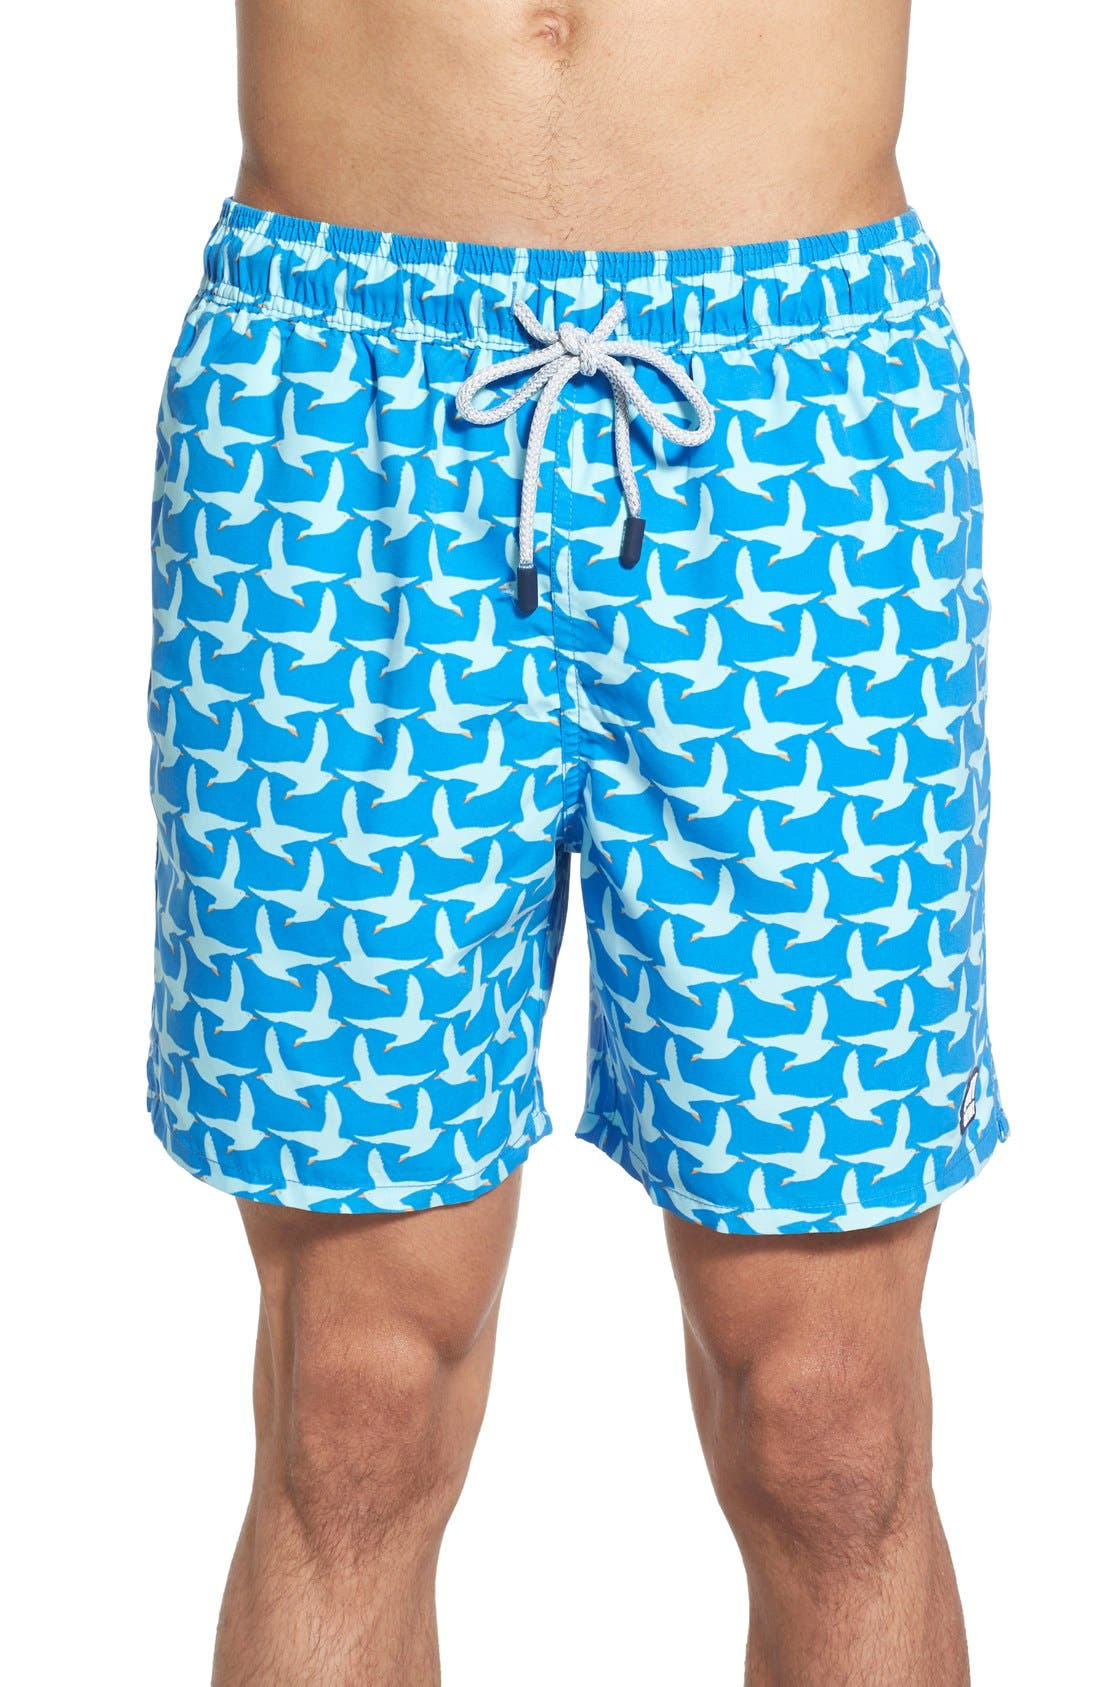 Alternate Image 1 Selected - Tom & Teddy Seagull Print Swim Trunks